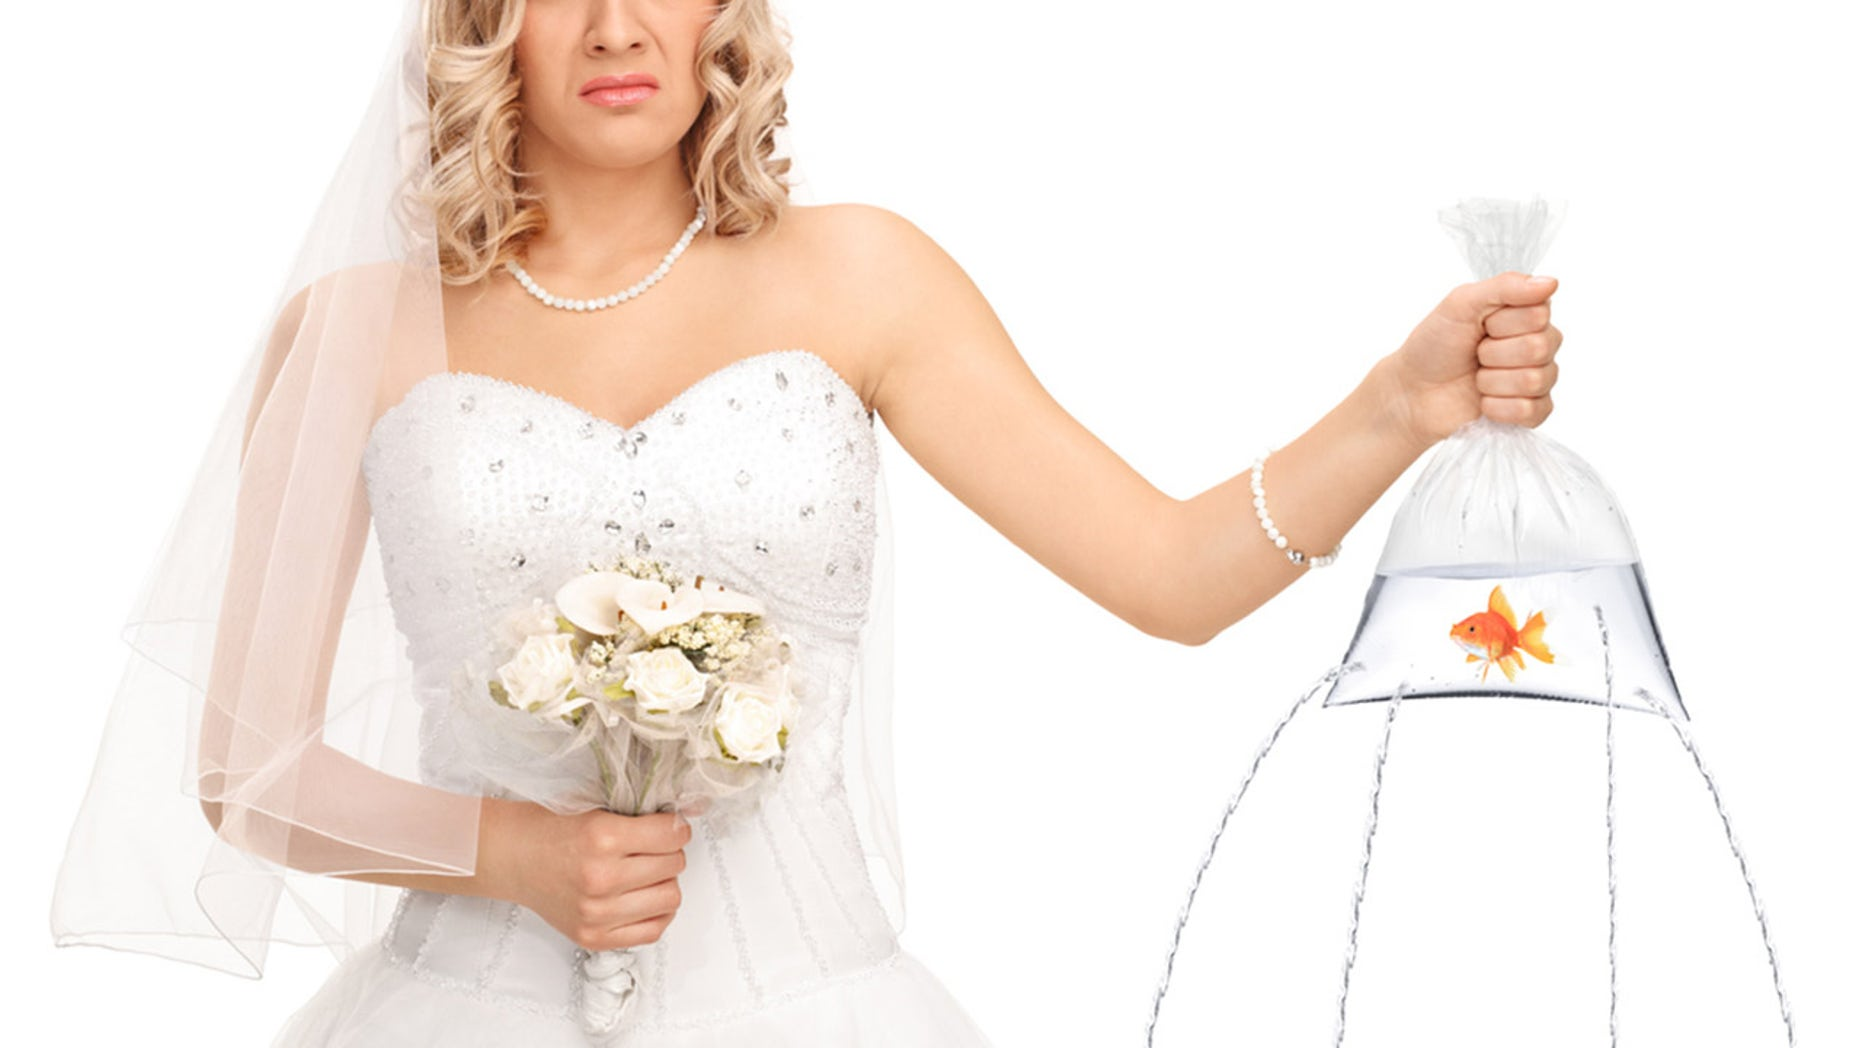 Sad bride holding a goldfish in a plastic bag with holes in it and the water leaking isolated on white background